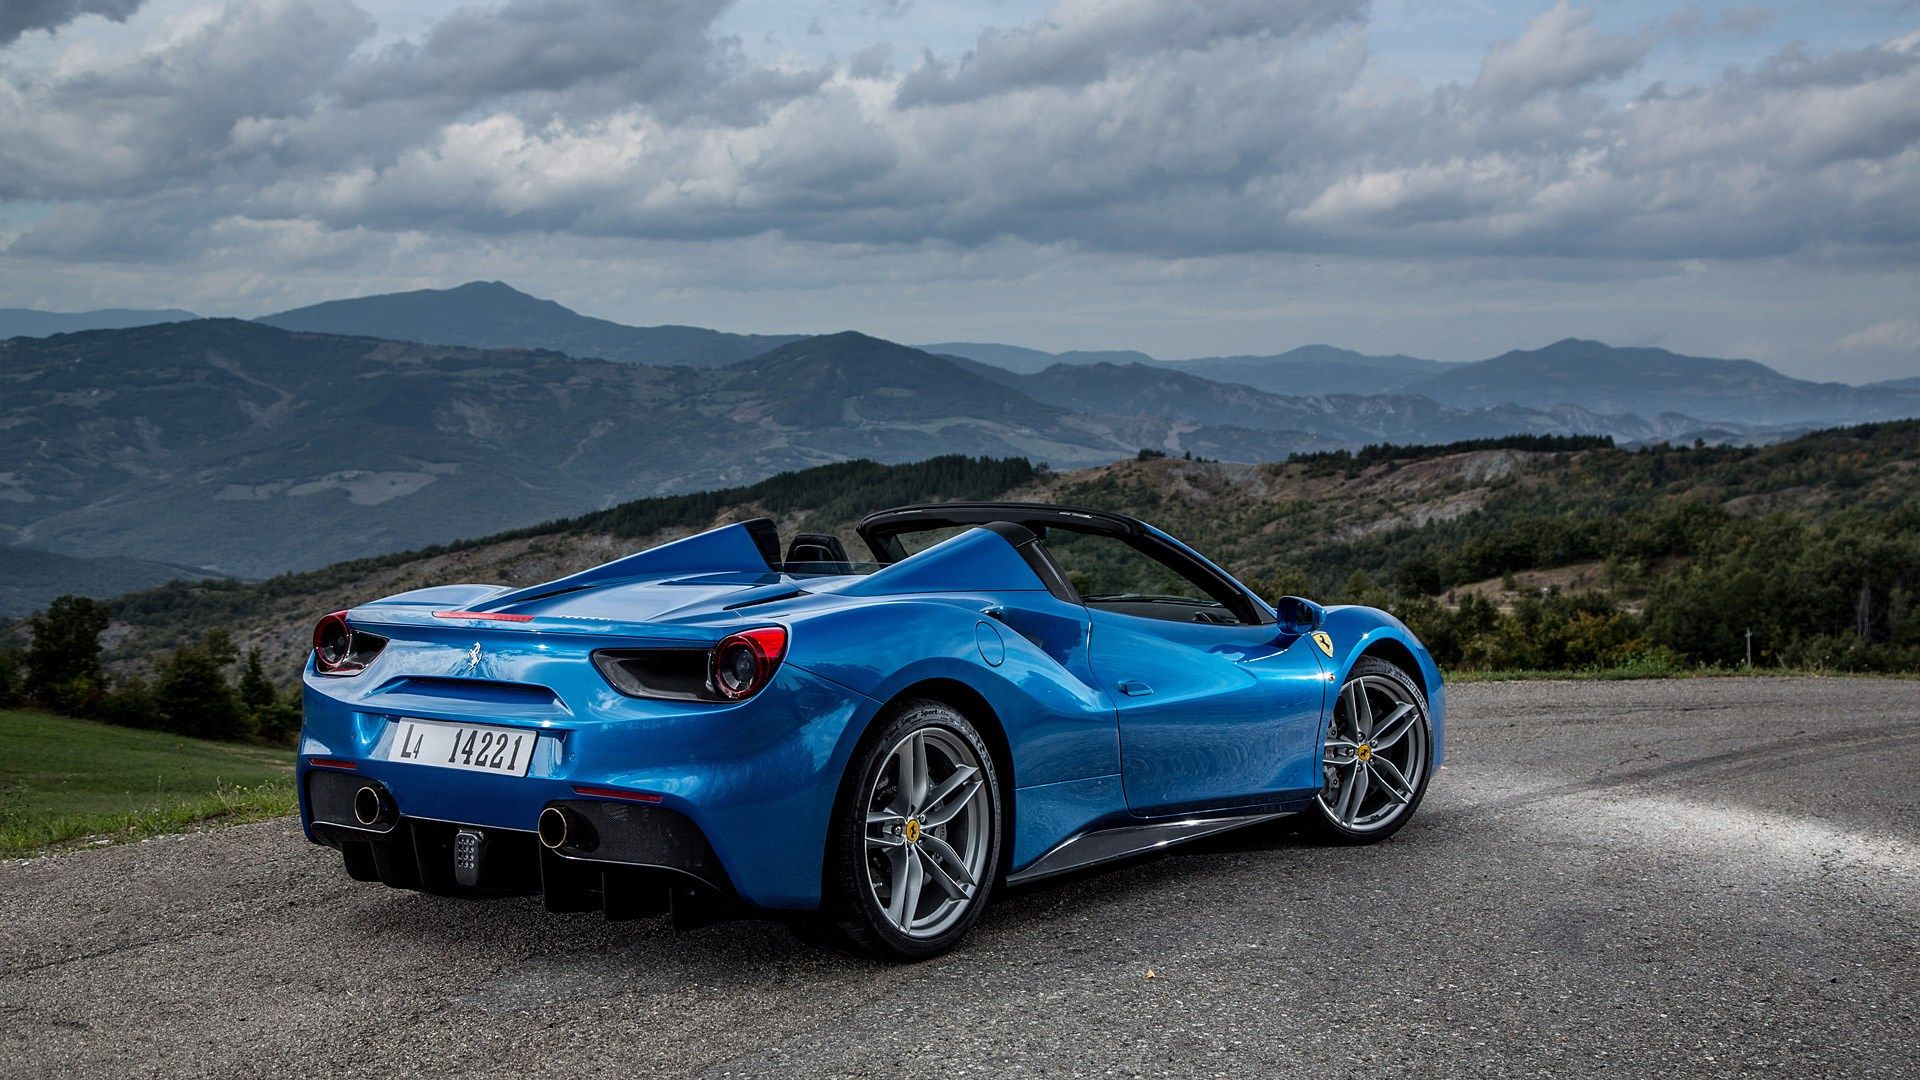 Ful Hd Ferrari 488 Spider Wallpaper Ferrari 488 Ferrari Car Car